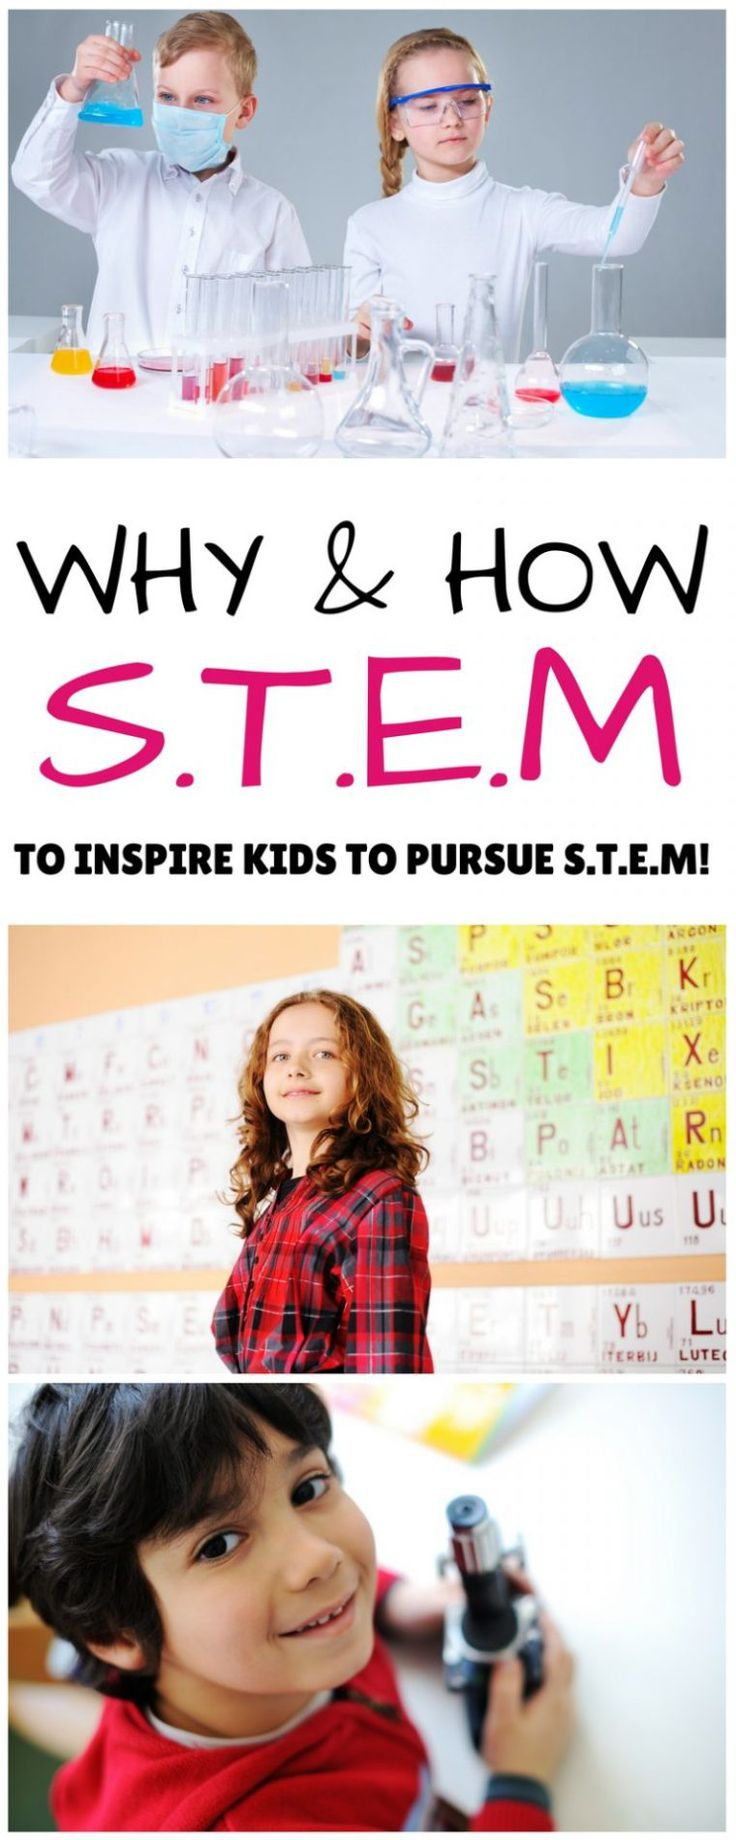 Great ideas for encouraging STEM in your kids including S.T.E.M. activity ideas!